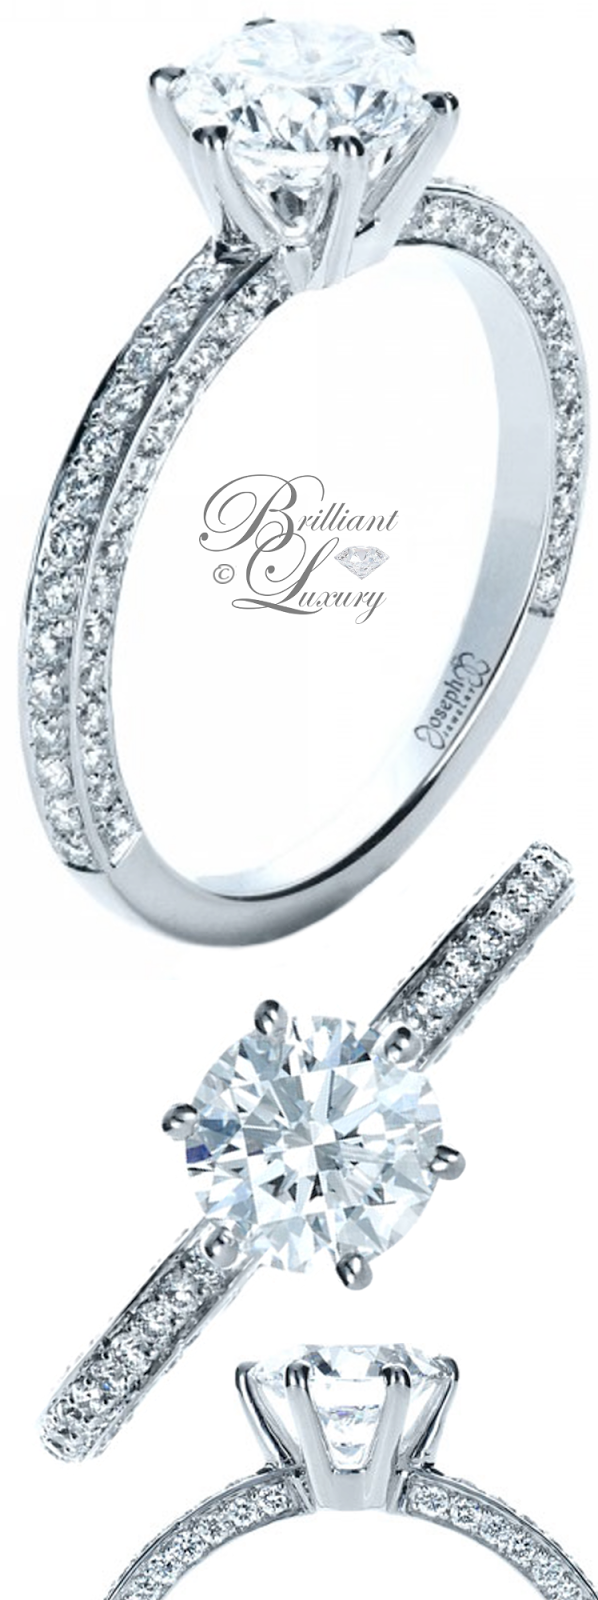 Brilliant Luxury ♦ Joseph Jewelry Six Prong Diamond Engagement Ring